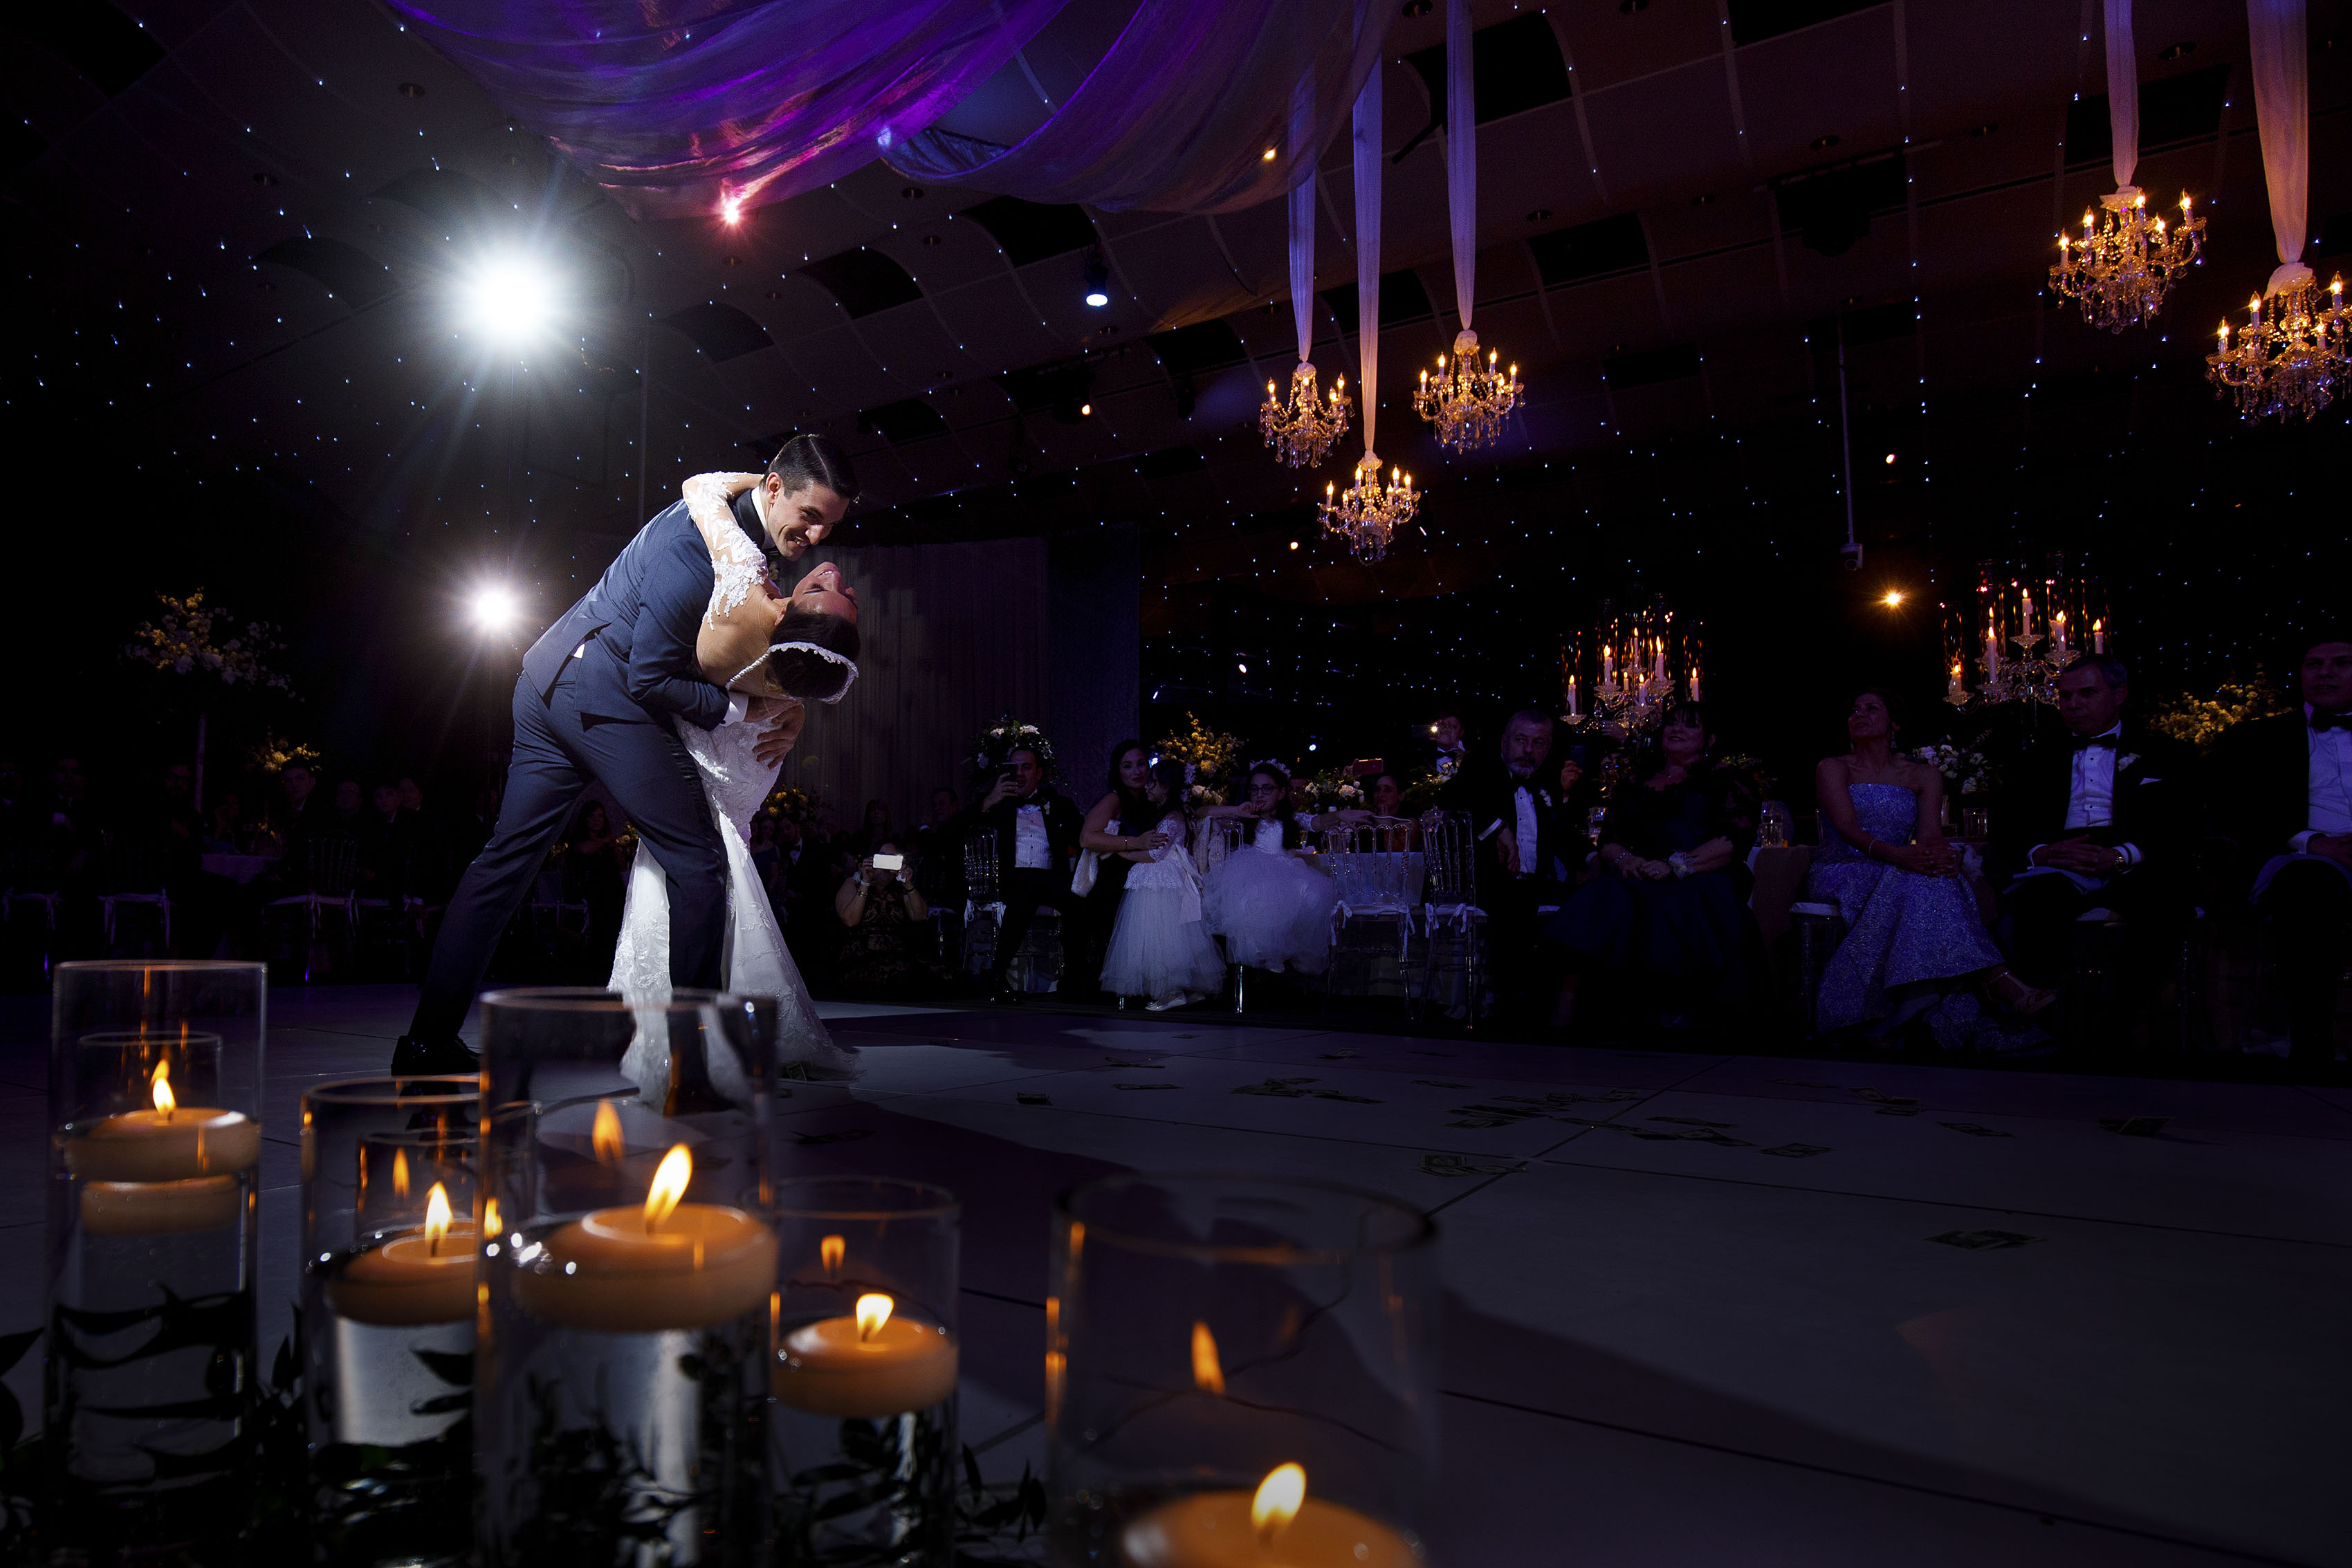 The groom dips the bride on the dance floor during their colorful greek wedding in Denver at Seawell Ballroom